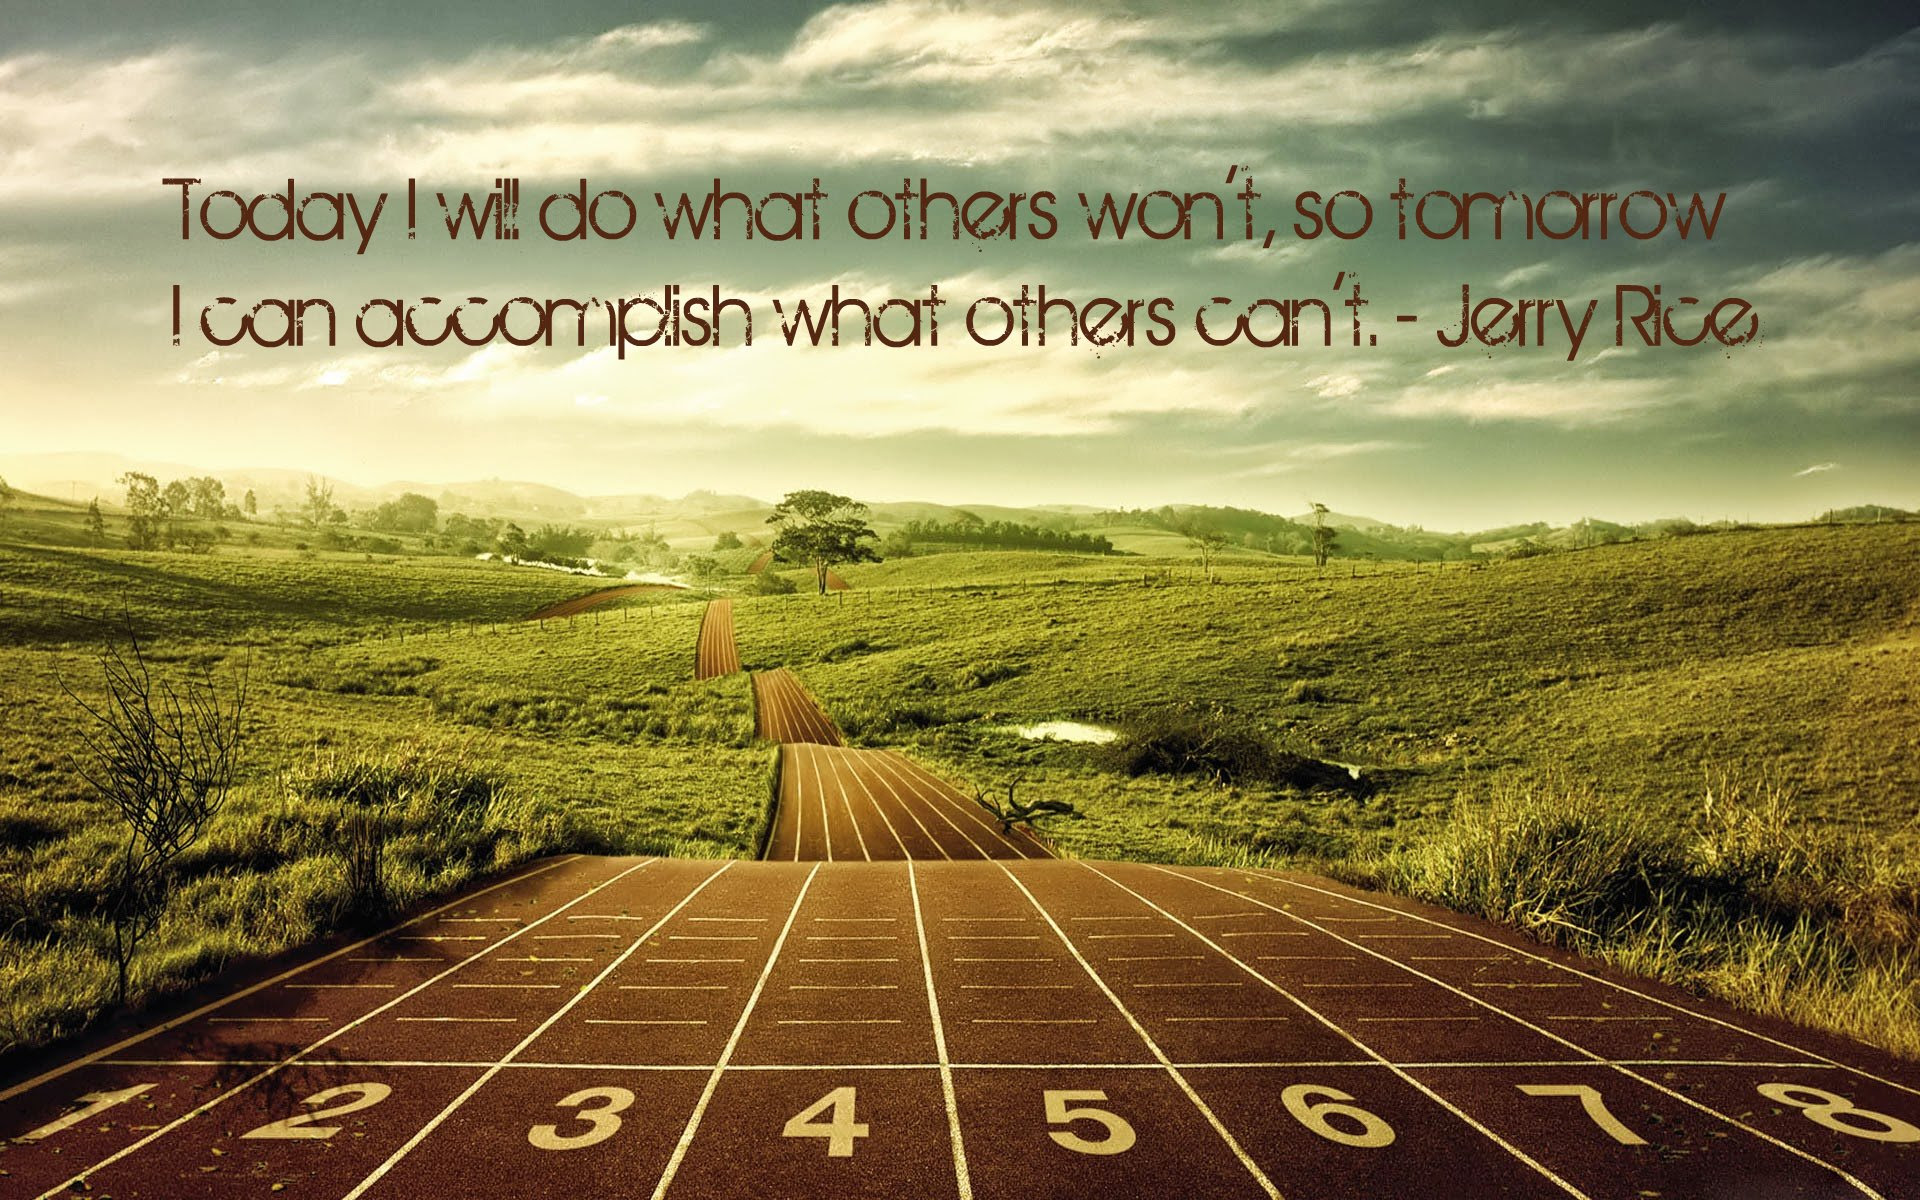 Today I Will Do What Others Wont Jerry Rice 1920x1200 Quotesporn